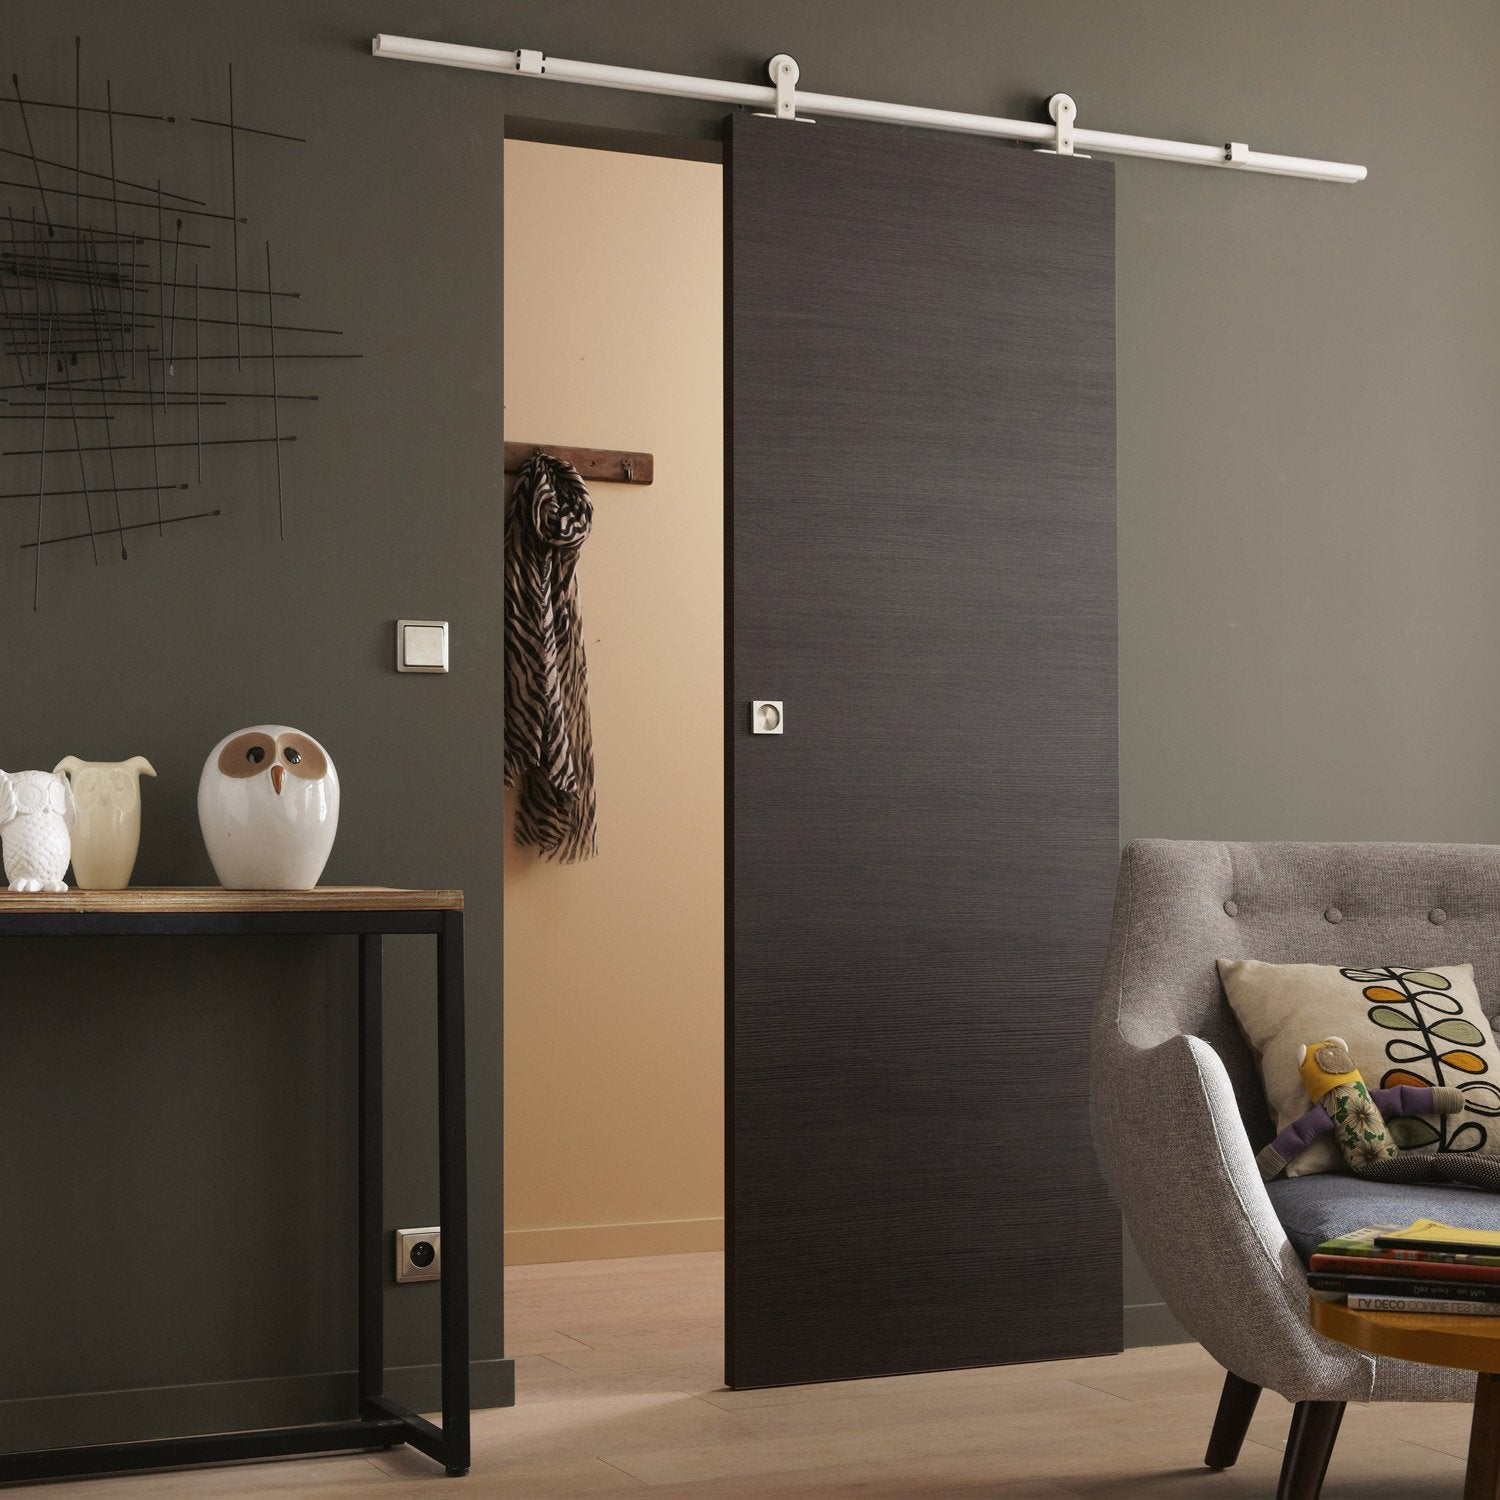 Pose d 39 une porte coulissante suspendue leroy merlin for Porte coulissante suspendu